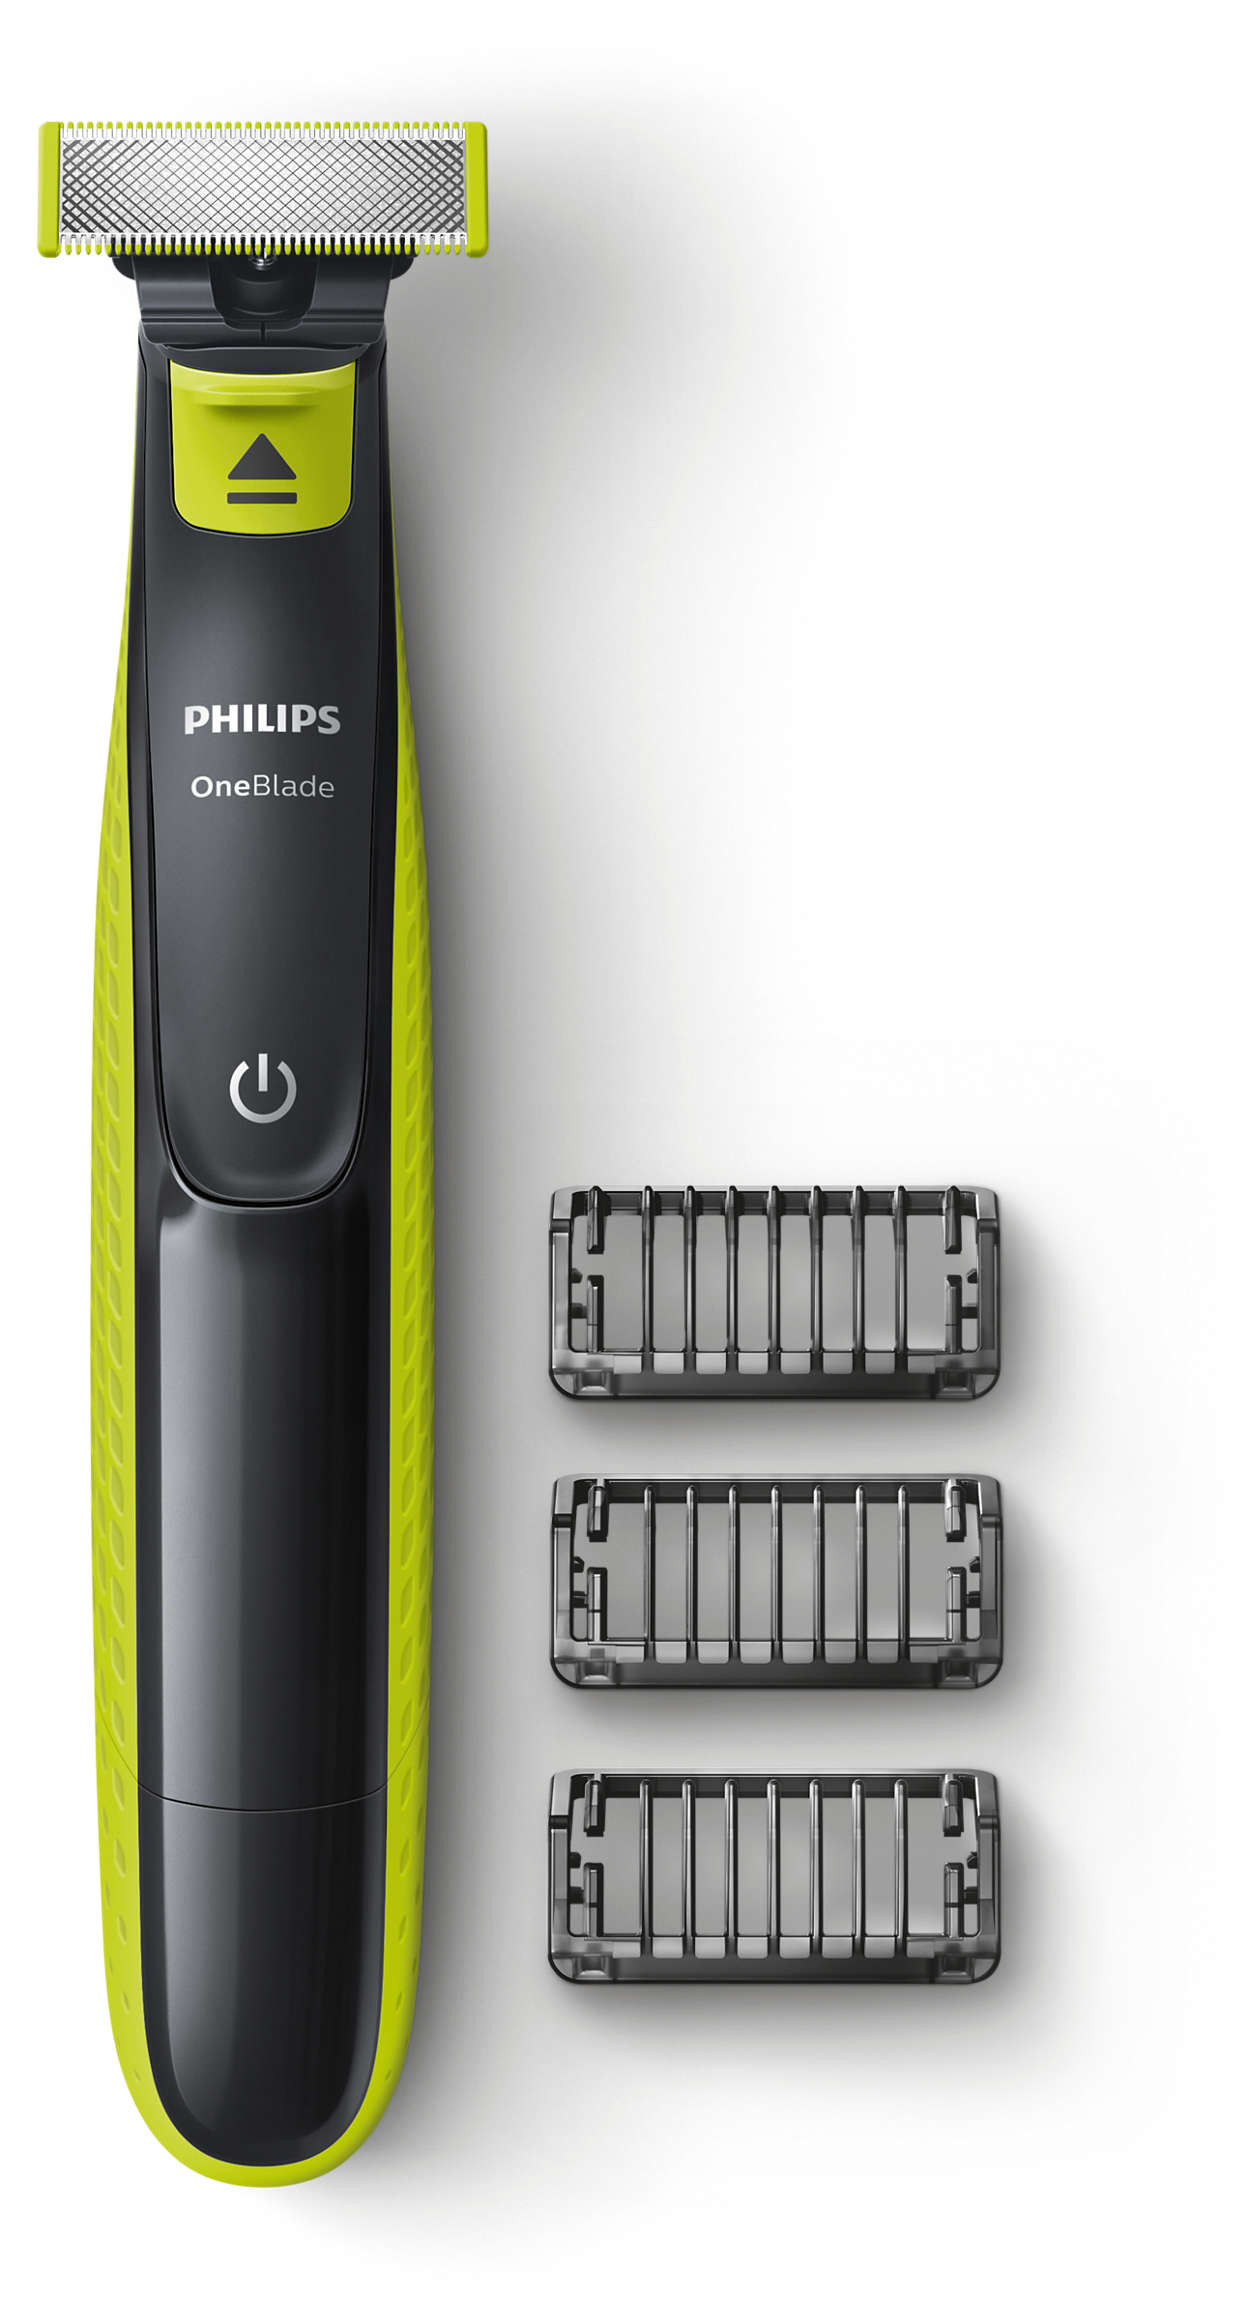 Philips One Blade : le test complet 2